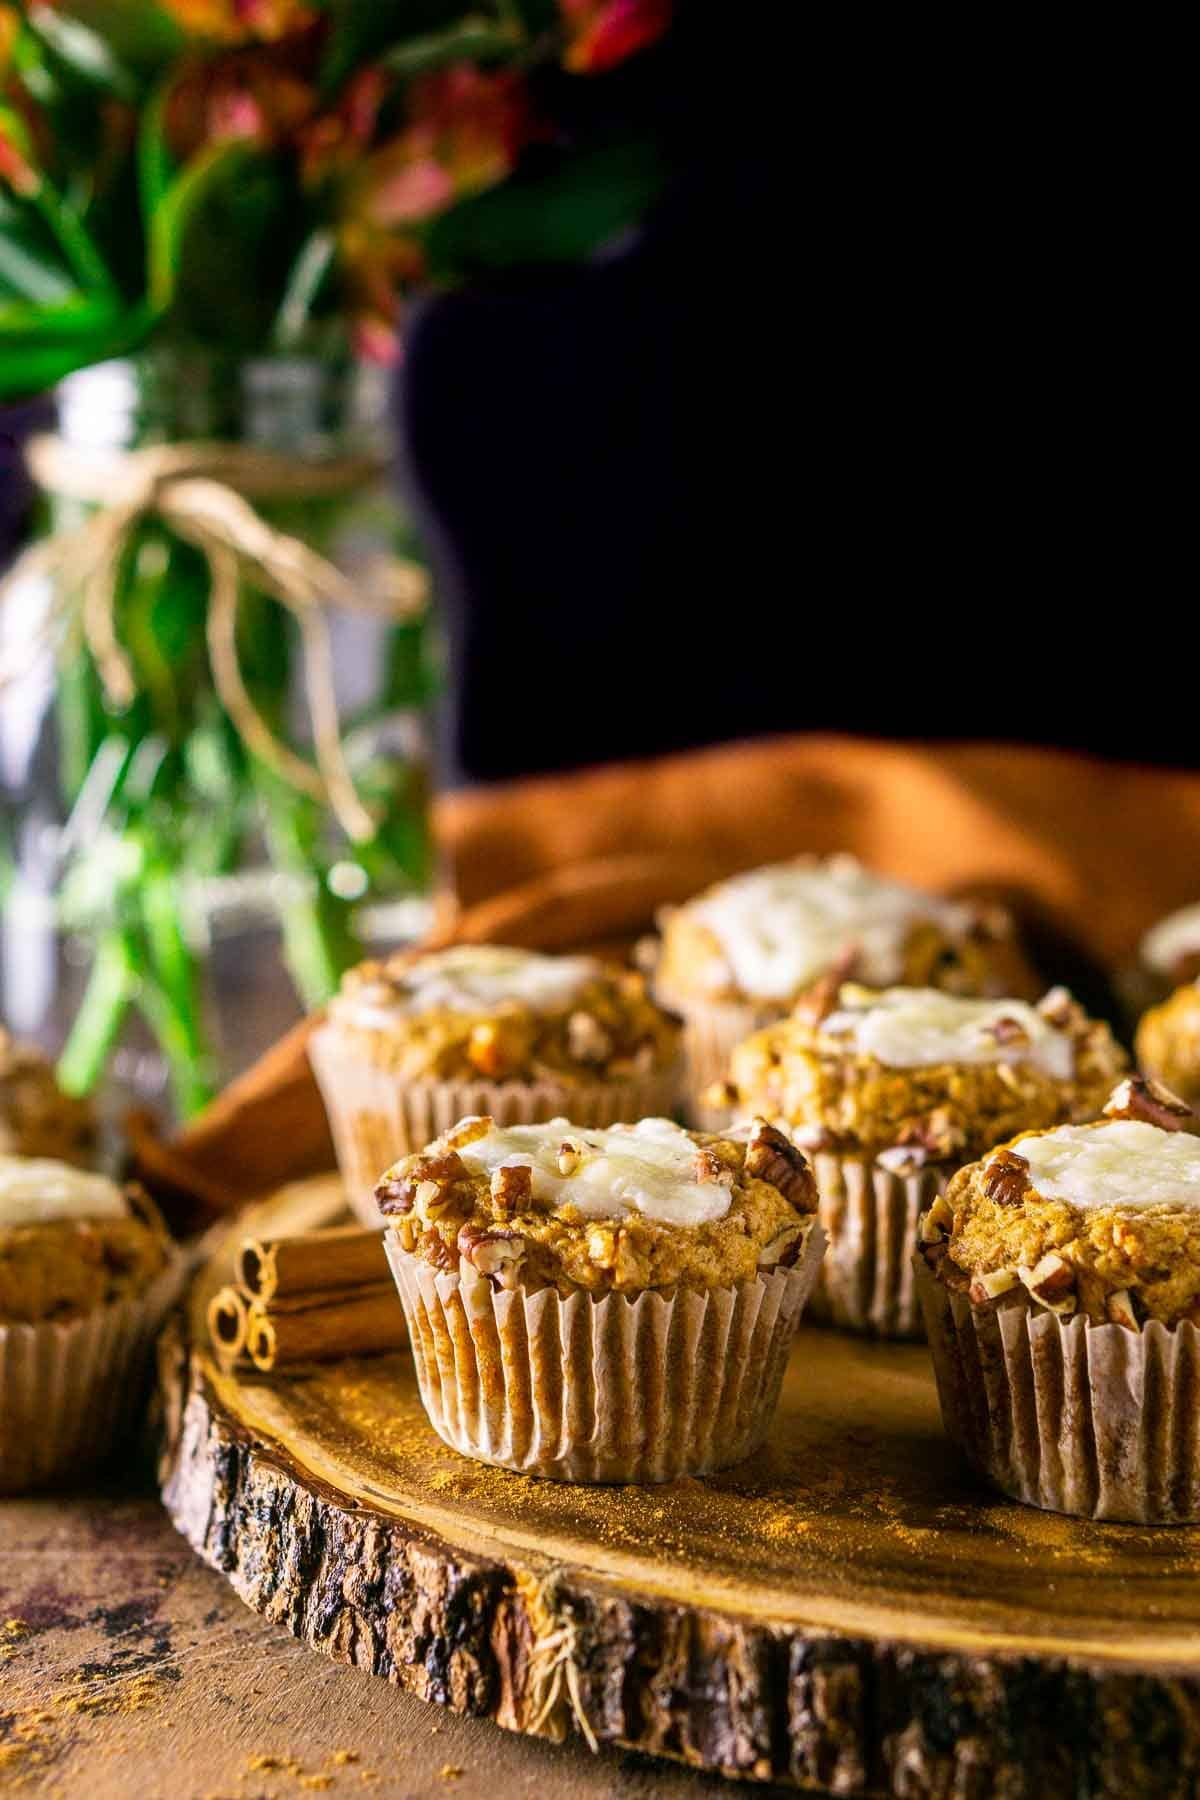 Sweet potato muffins with ginger cream cheese filling on a wooden serving board with flowers and an orange napkin in the background.